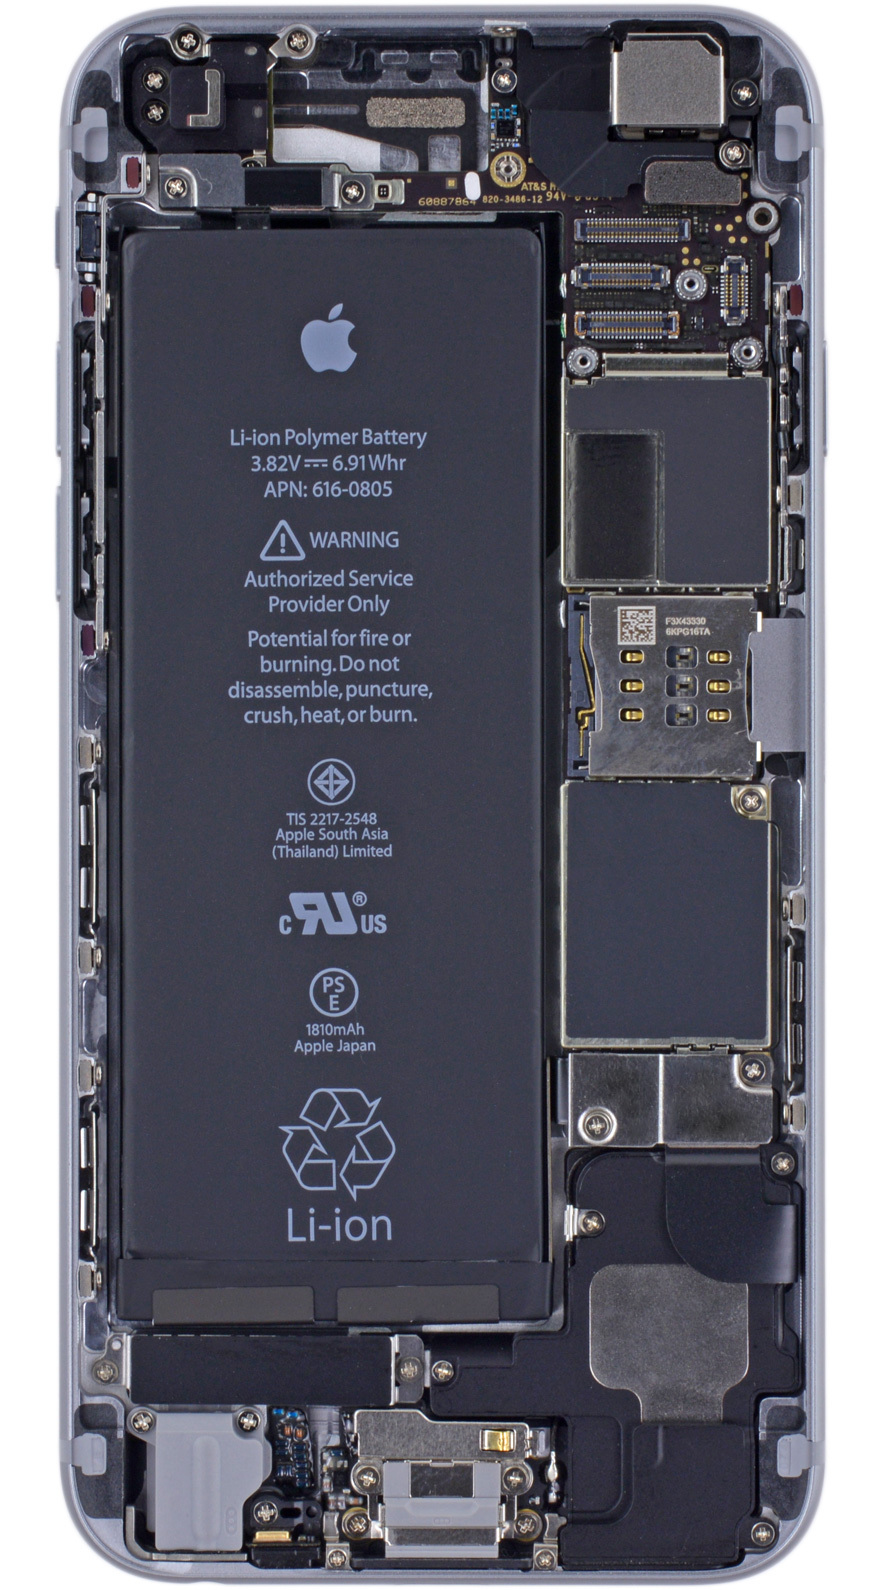 Iphone X Teardown Wallpaper X Ray Vision Internals Wallpaper For The Iphone 6 Iphone